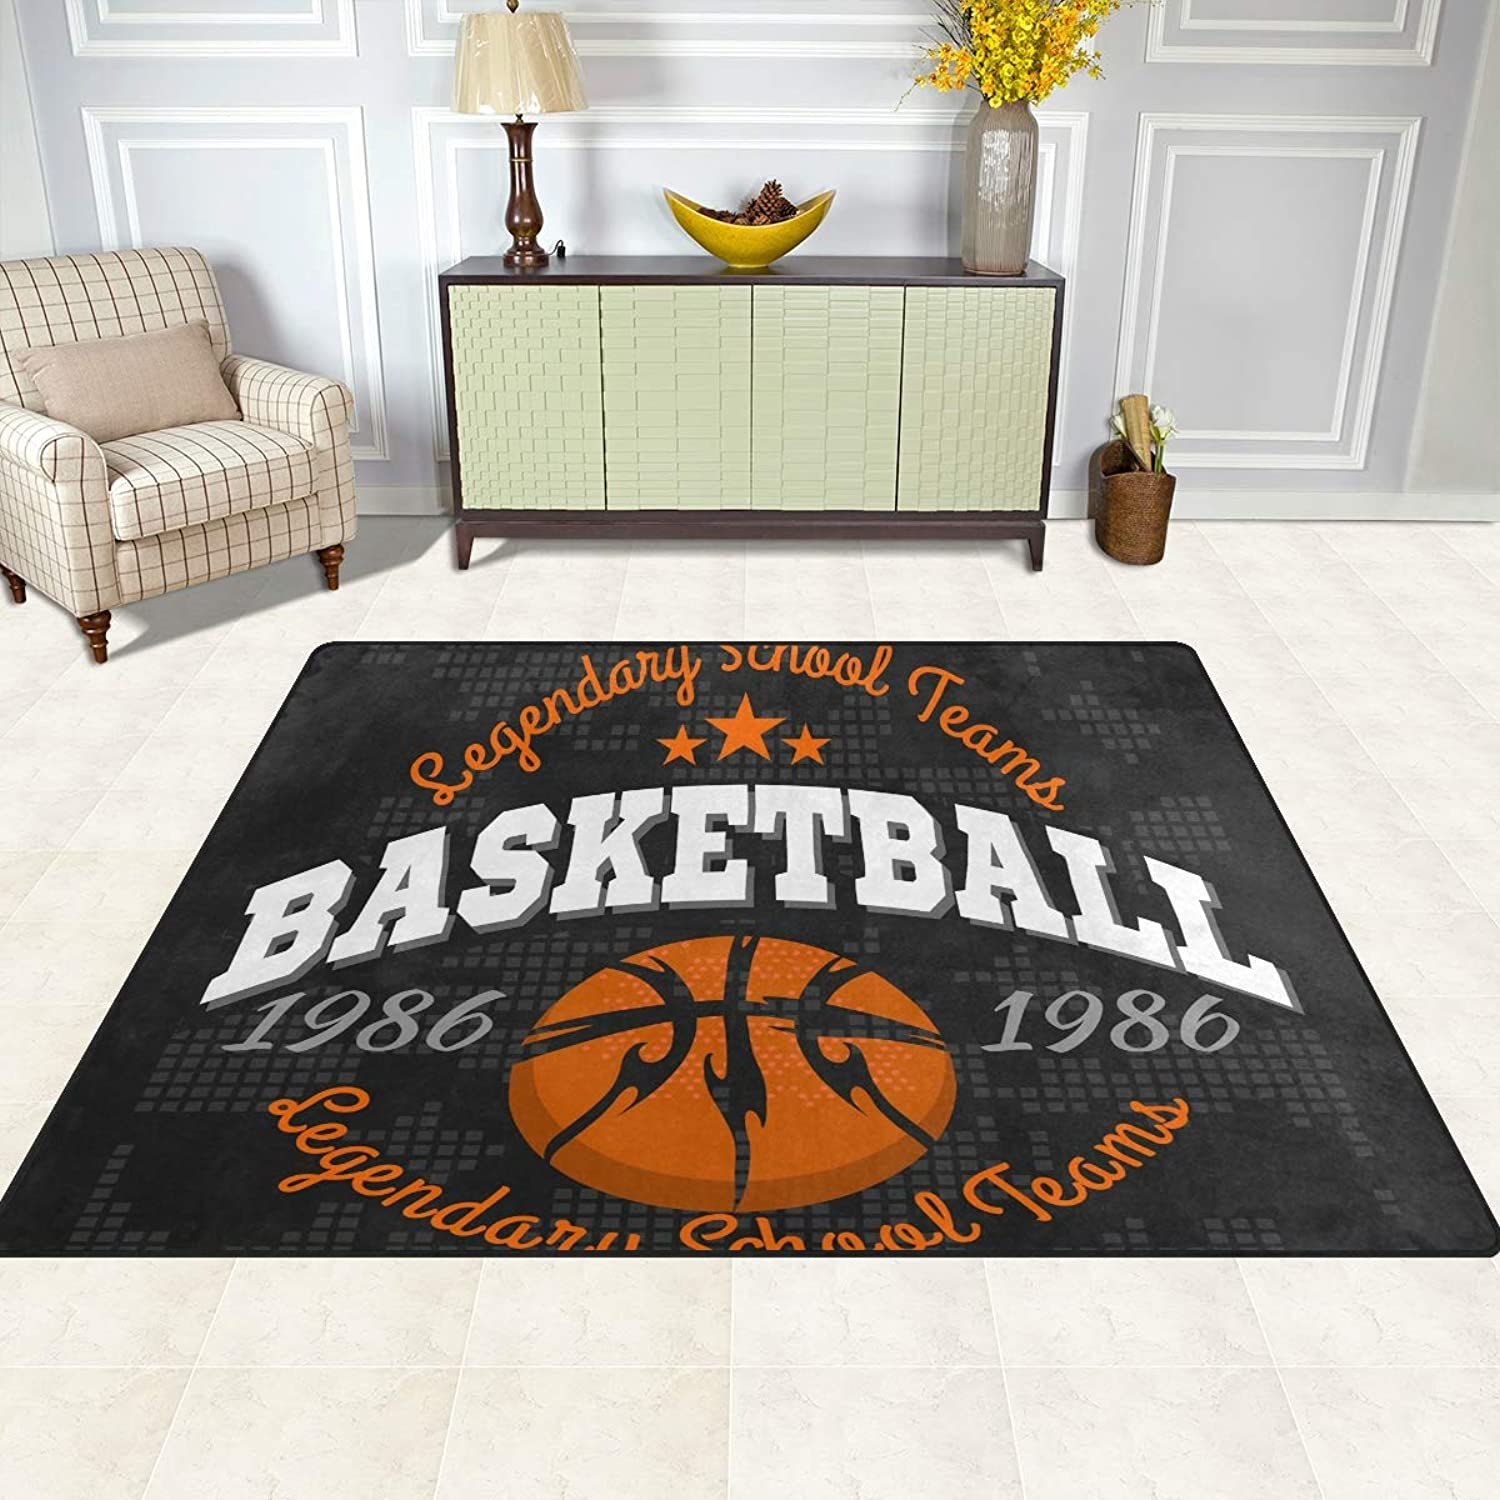 FAJRO Basketball Emblem Rugs for entryway Doormat Area Rug Multipattern Door Mat shoes Scraper Home Dec Anti-Slip Indoor Outdoor